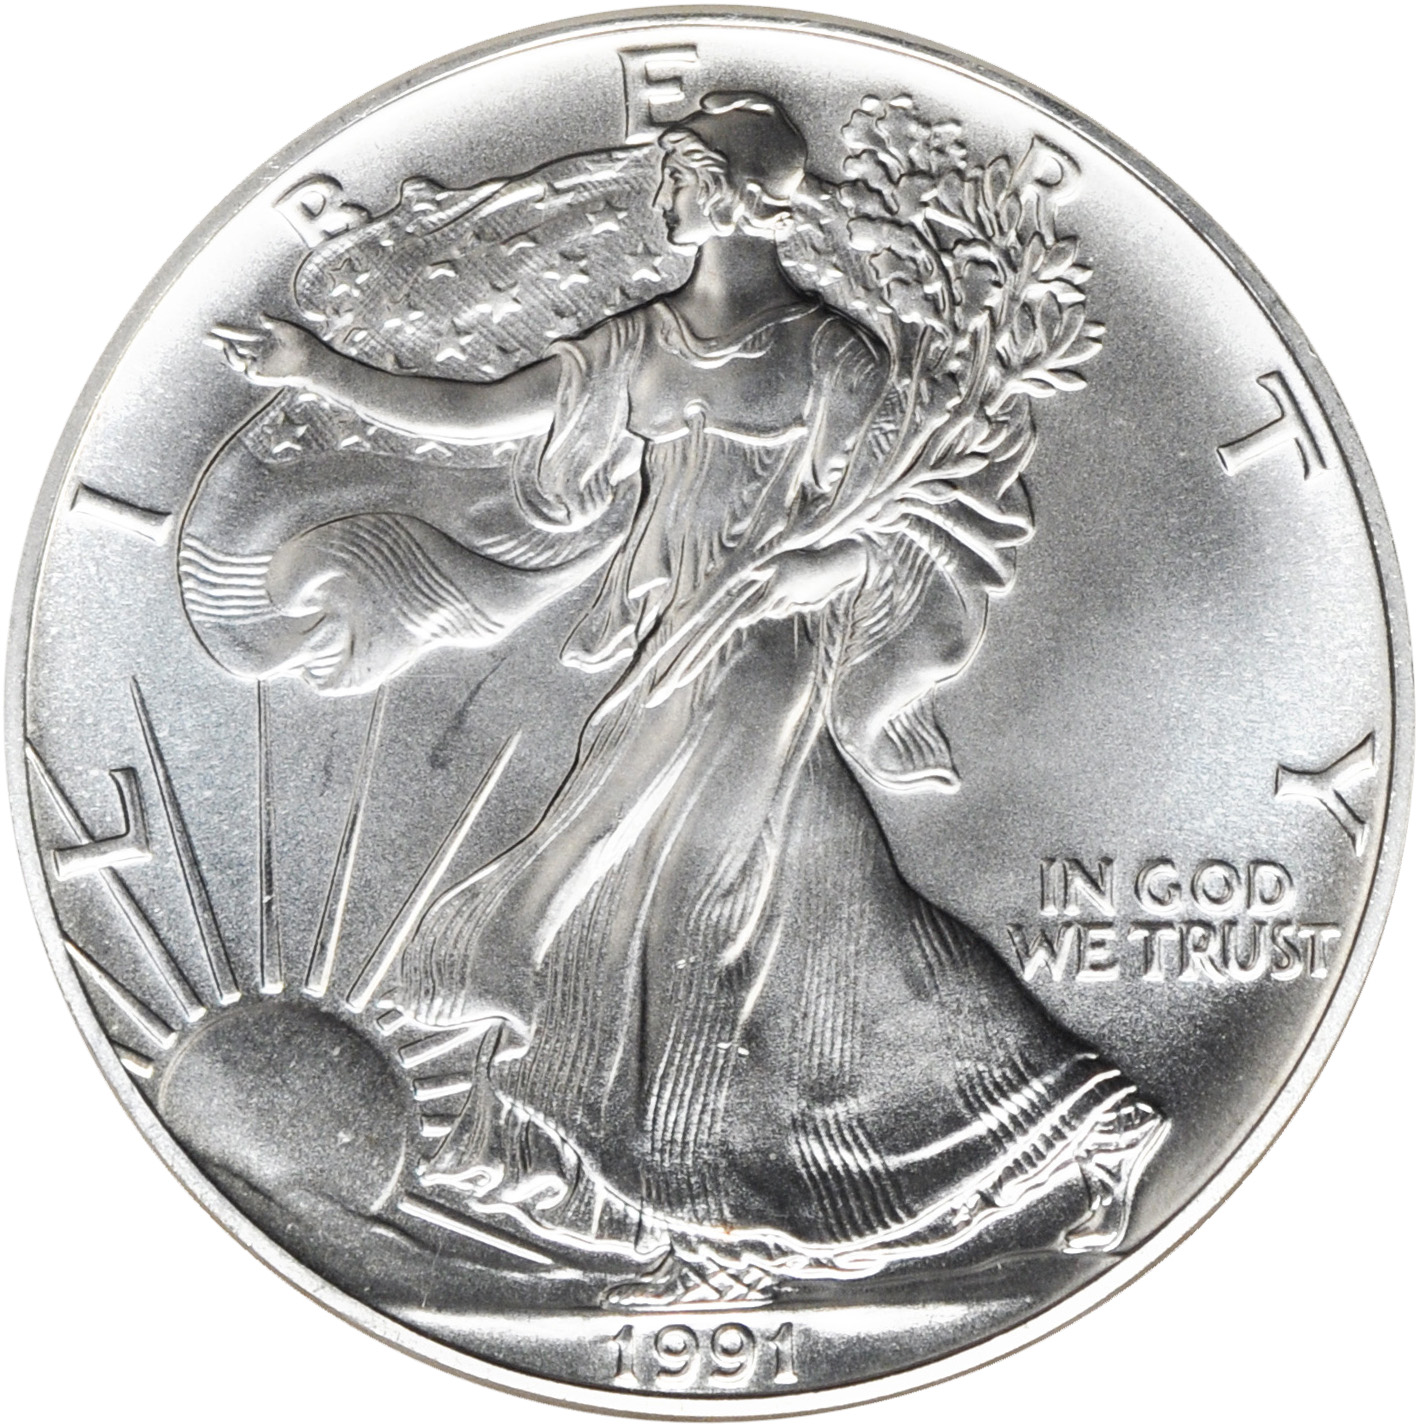 Value Of 1991 $1 Silver Coin